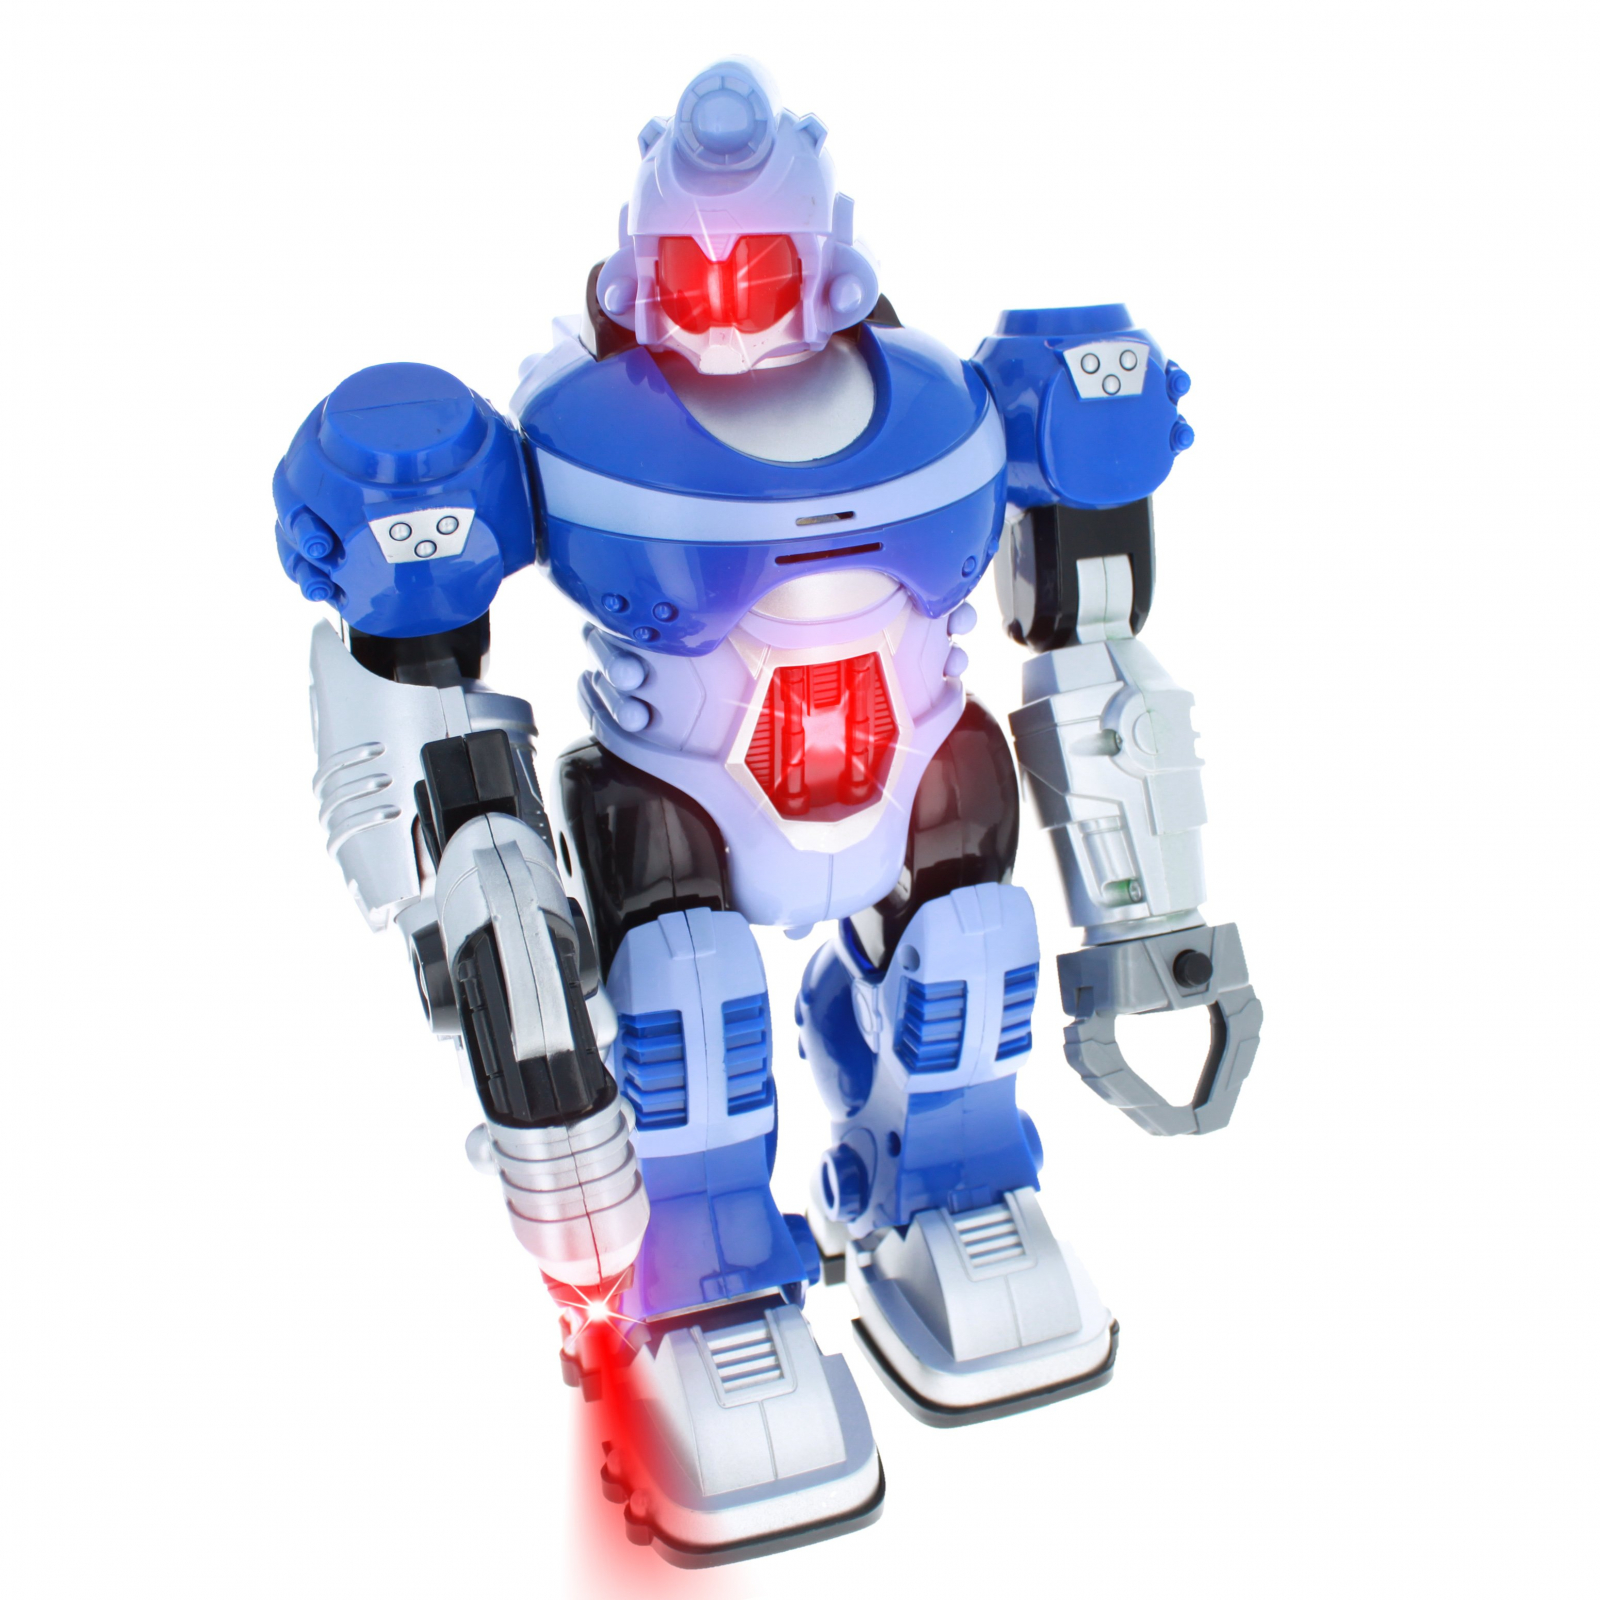 Power Warrior Light Up LED Super Robot Action Figure -Blue